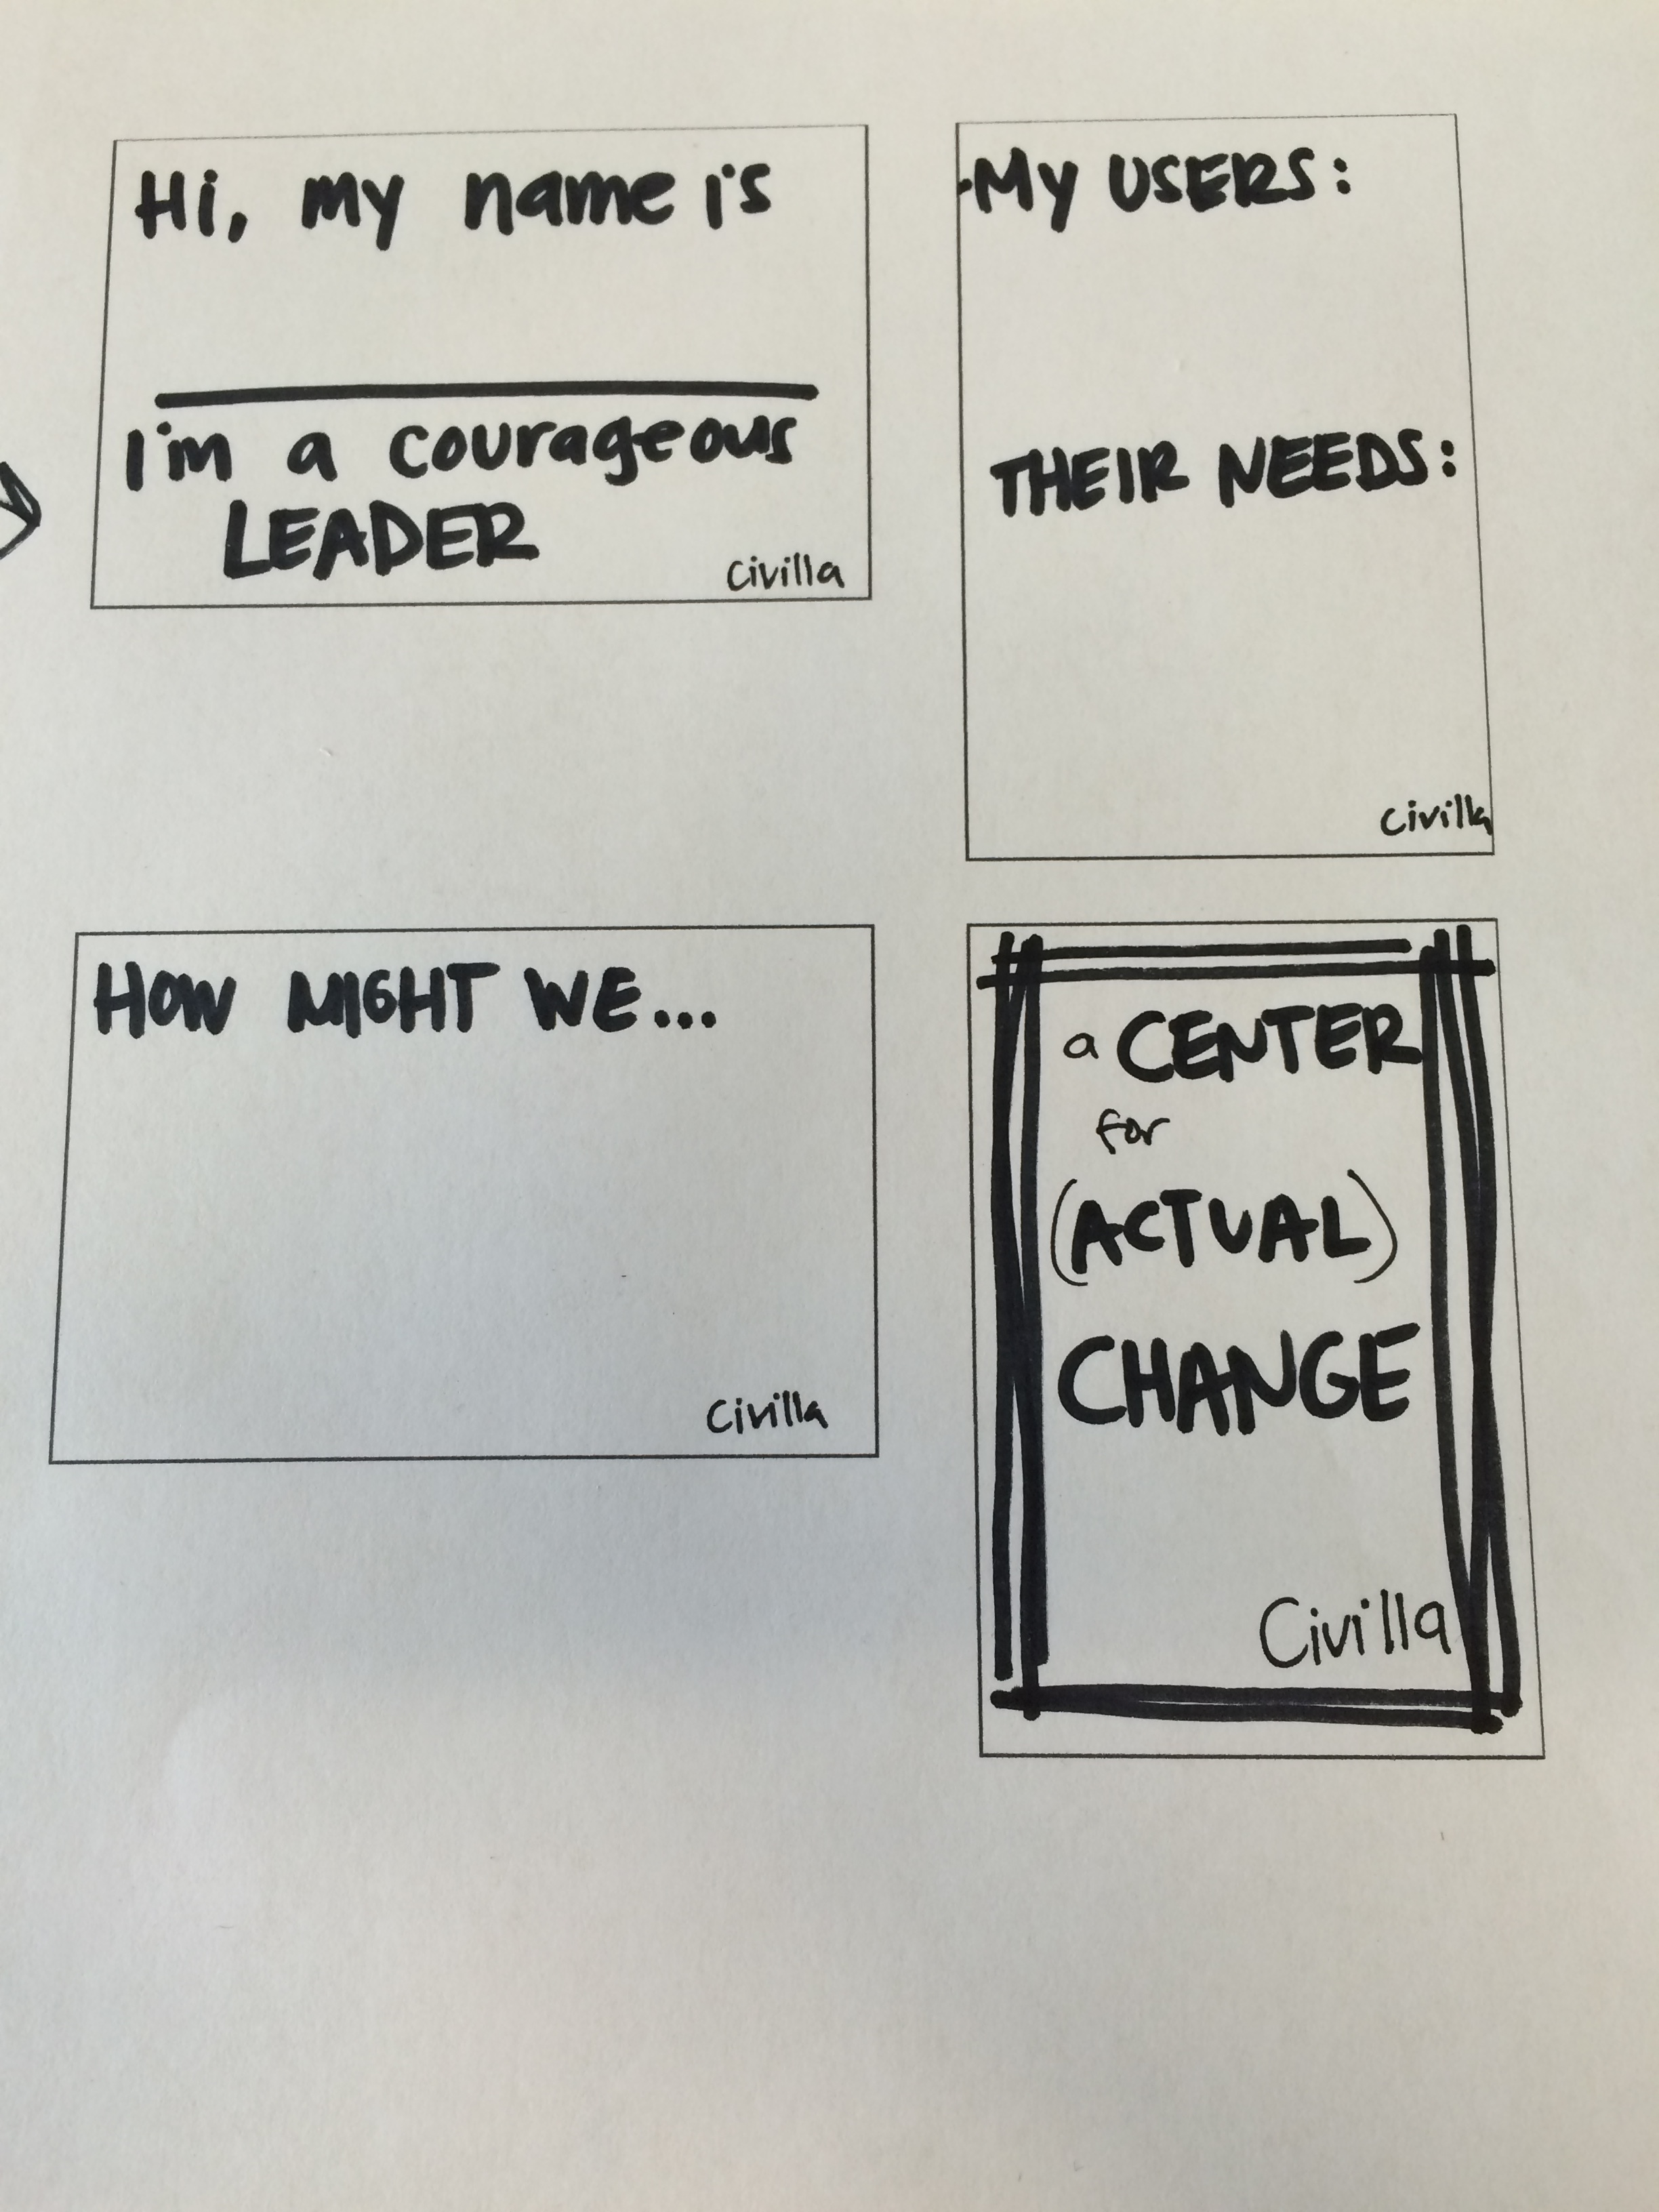 Prototype C )  Fill-in-the-blank name tags that push visitors to grapple with questions Civilla often introduces